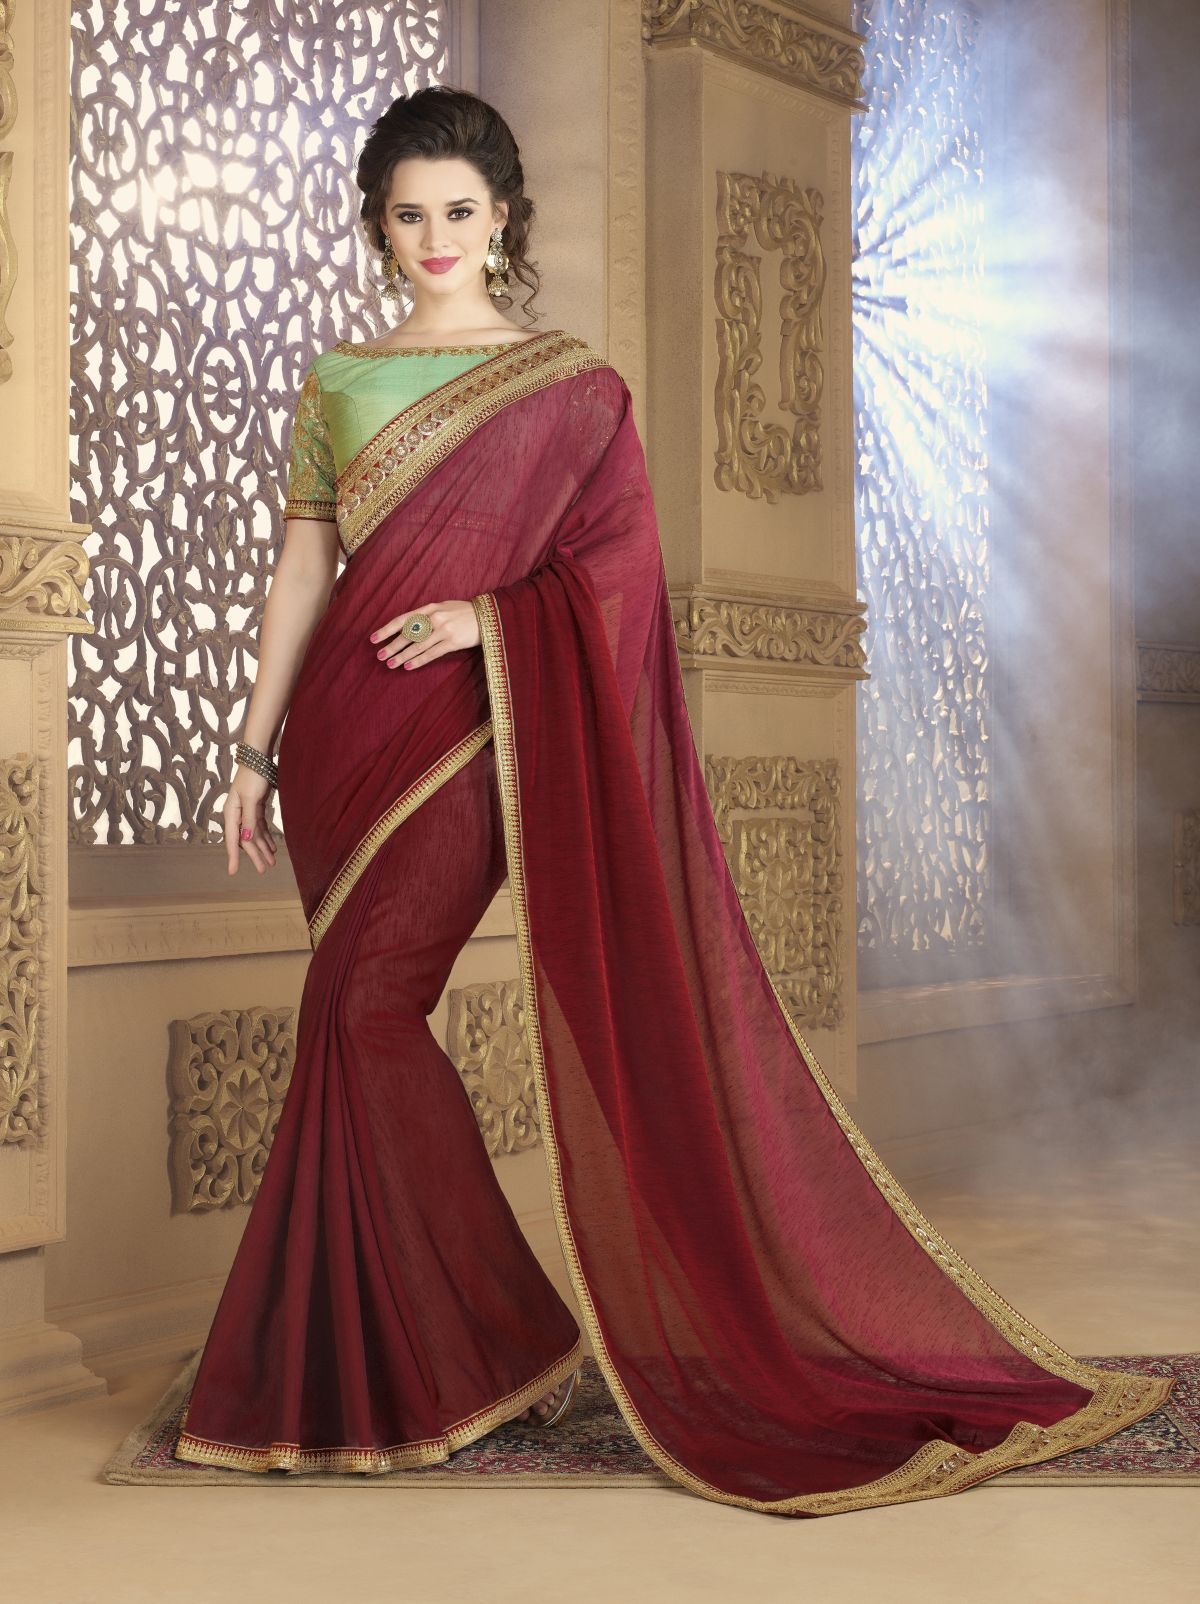 Embroidered Georgette Saree (Sari) in Maroon